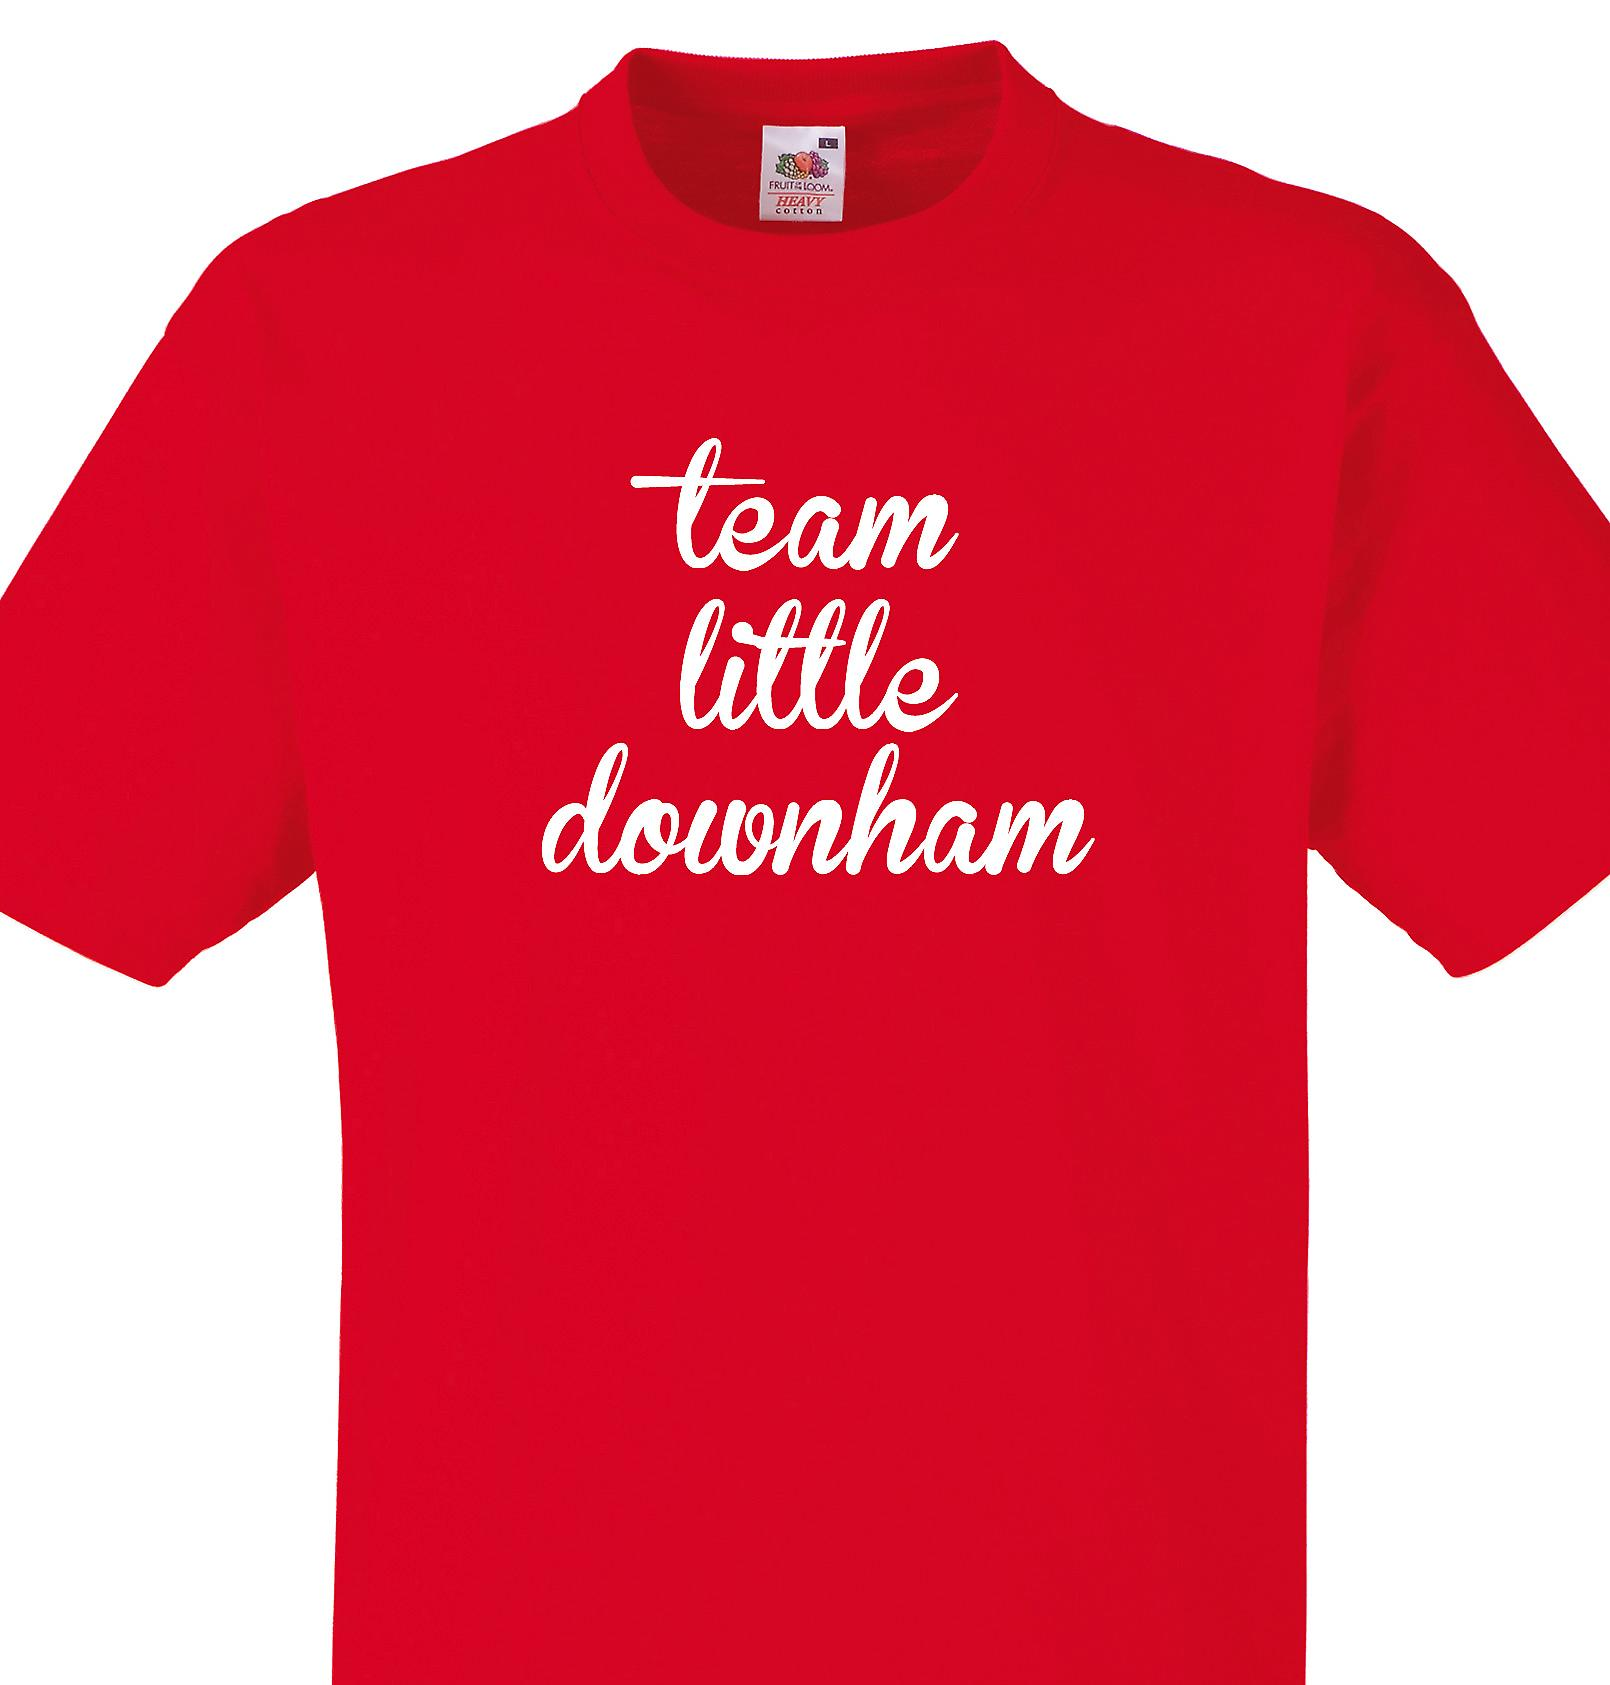 Team Little downham Red T shirt